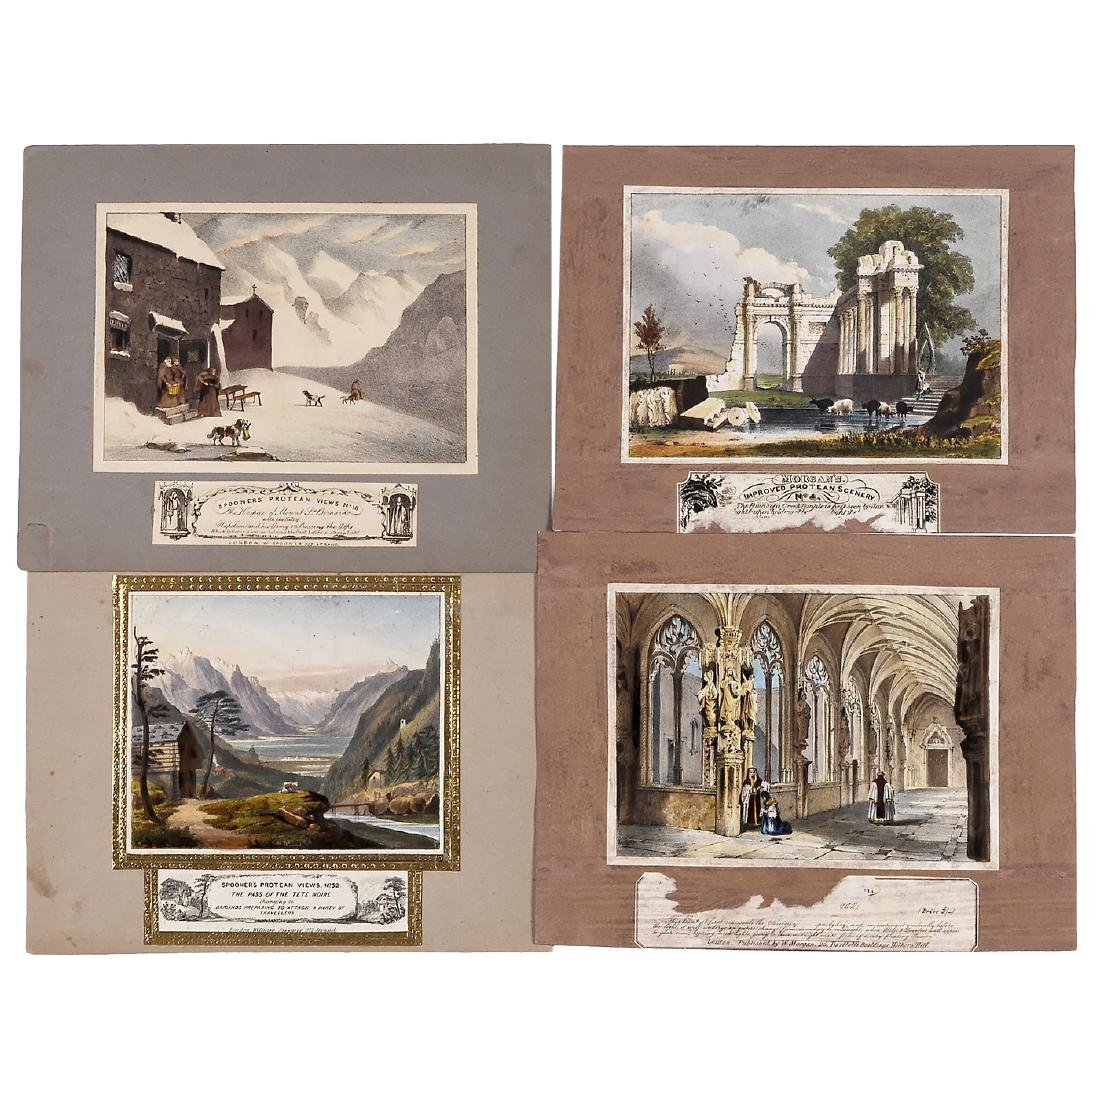 Transparencies (Day and Night), c. 1840-80 - 3